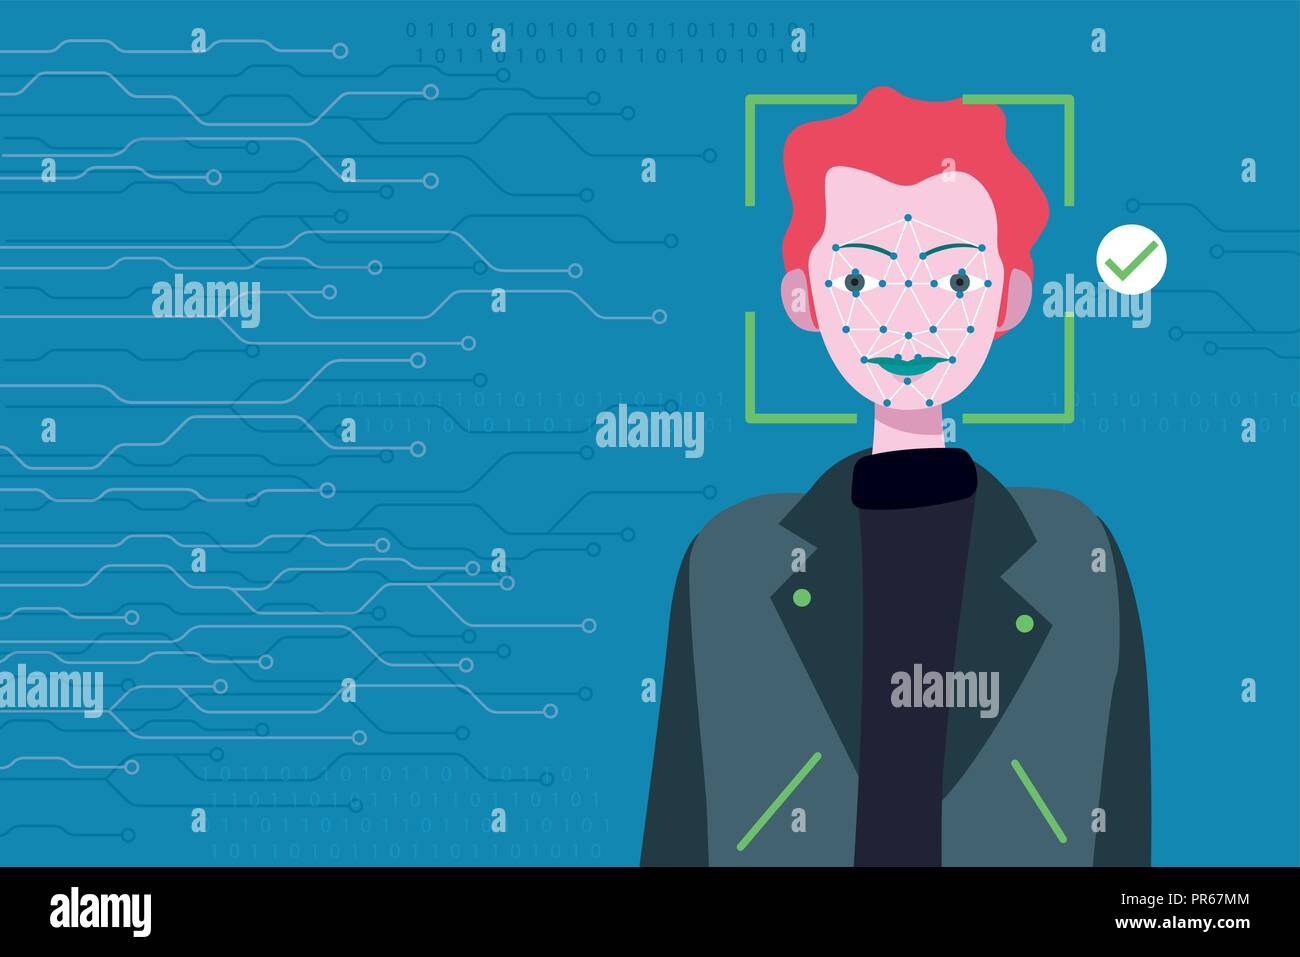 Face Recognition Technology. Scanning of a man's face of for facial recognition. - Stock Vector